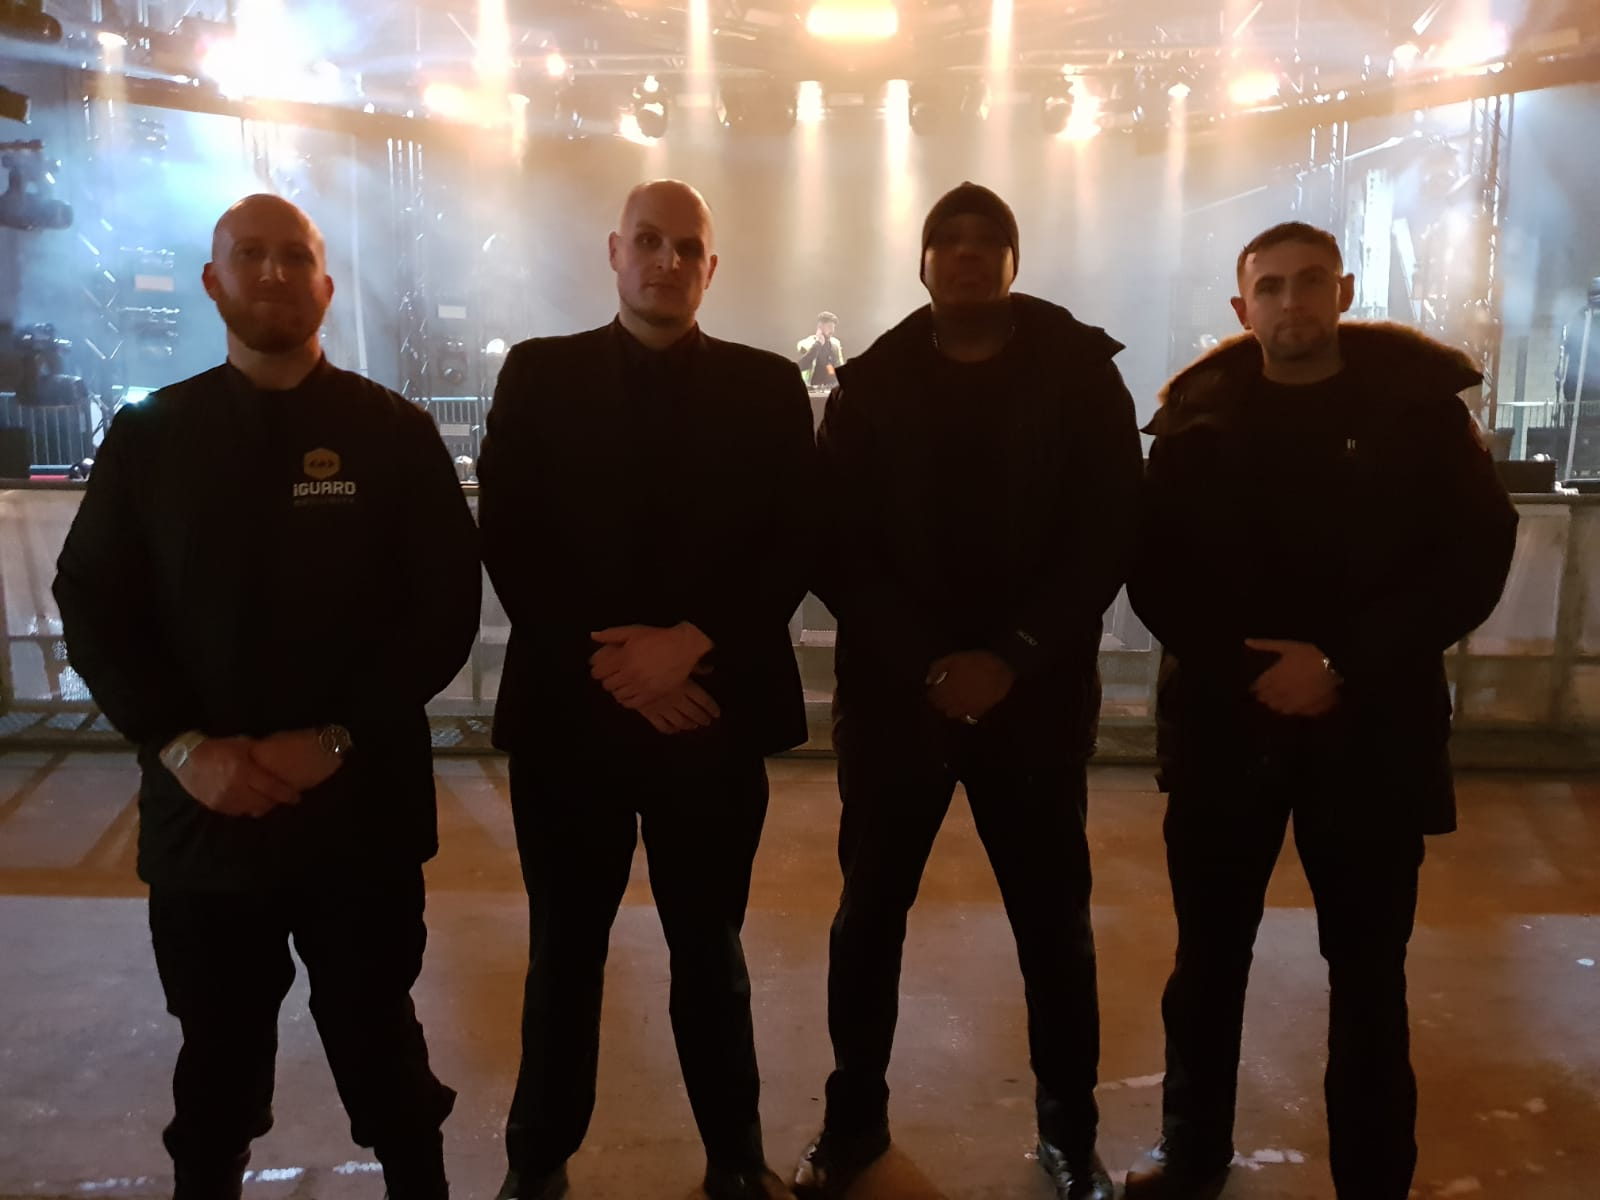 manchester security guards